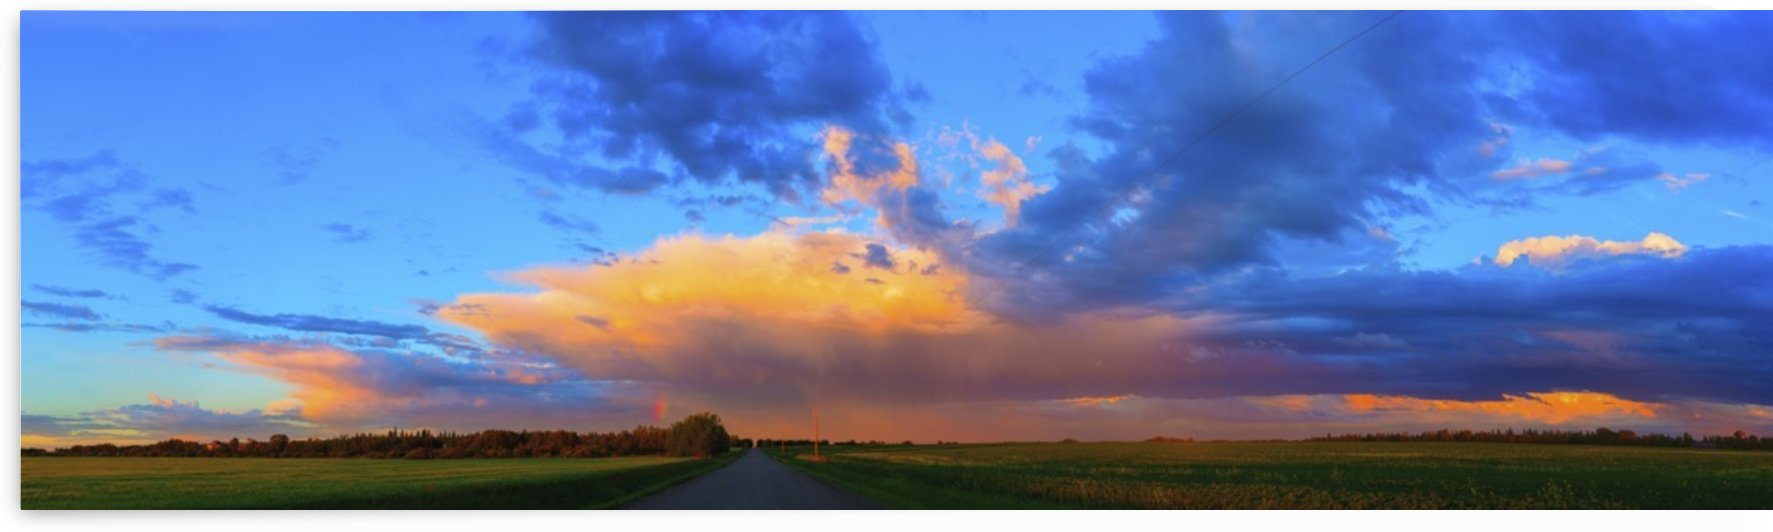 Glowing golden clouds over green fields and a country road at sunset; Alberta, Canada by PacificStock